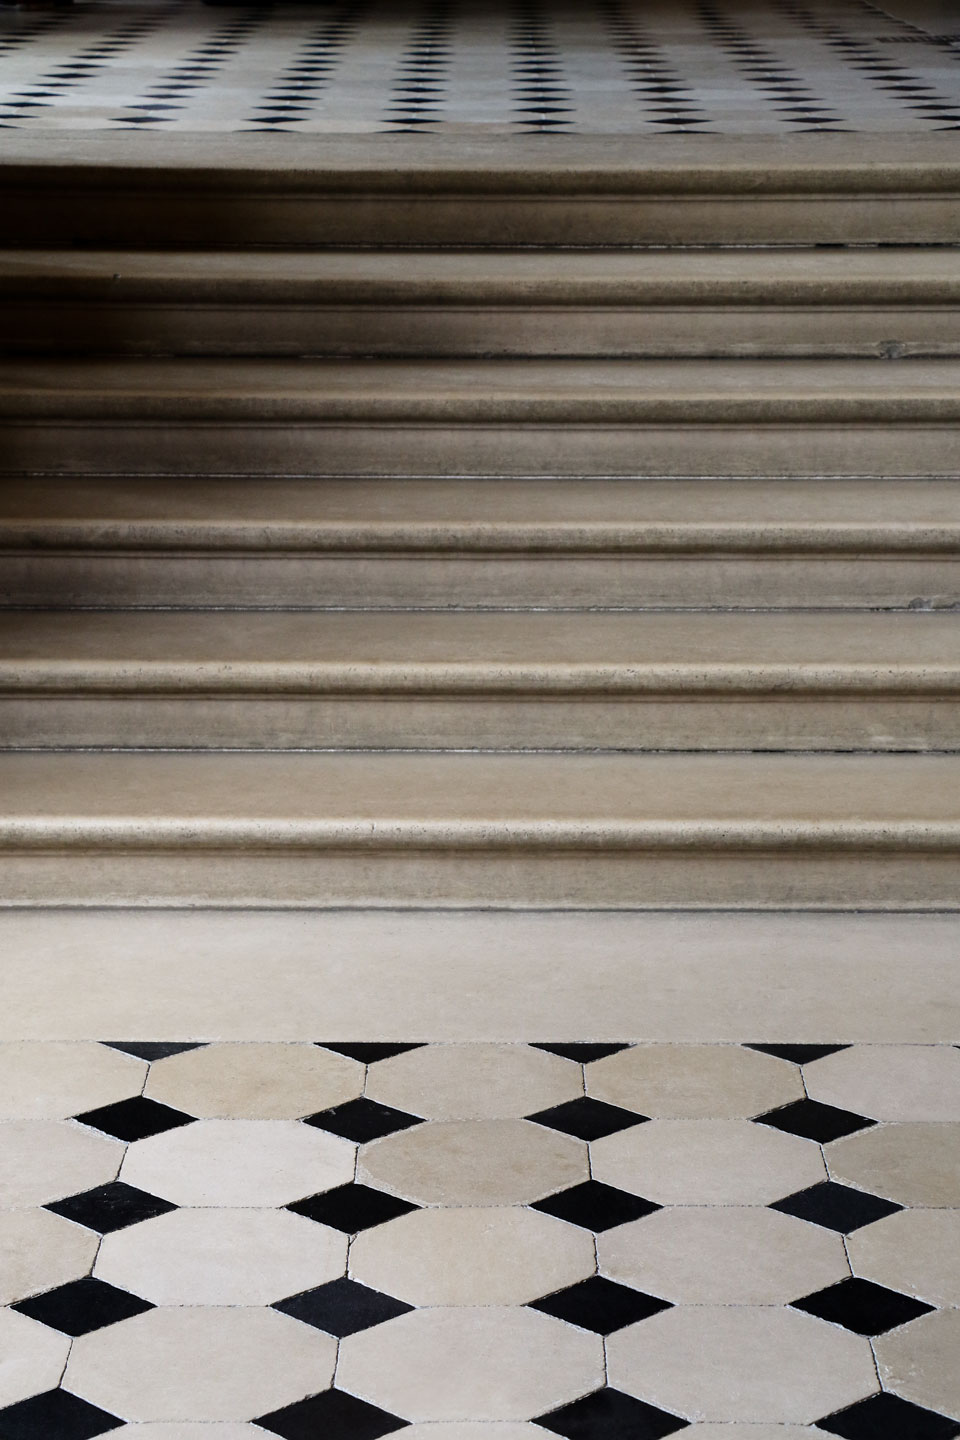 French Photographer Art Photography Black and White Marble Floor of the Palace of Fontainebleau